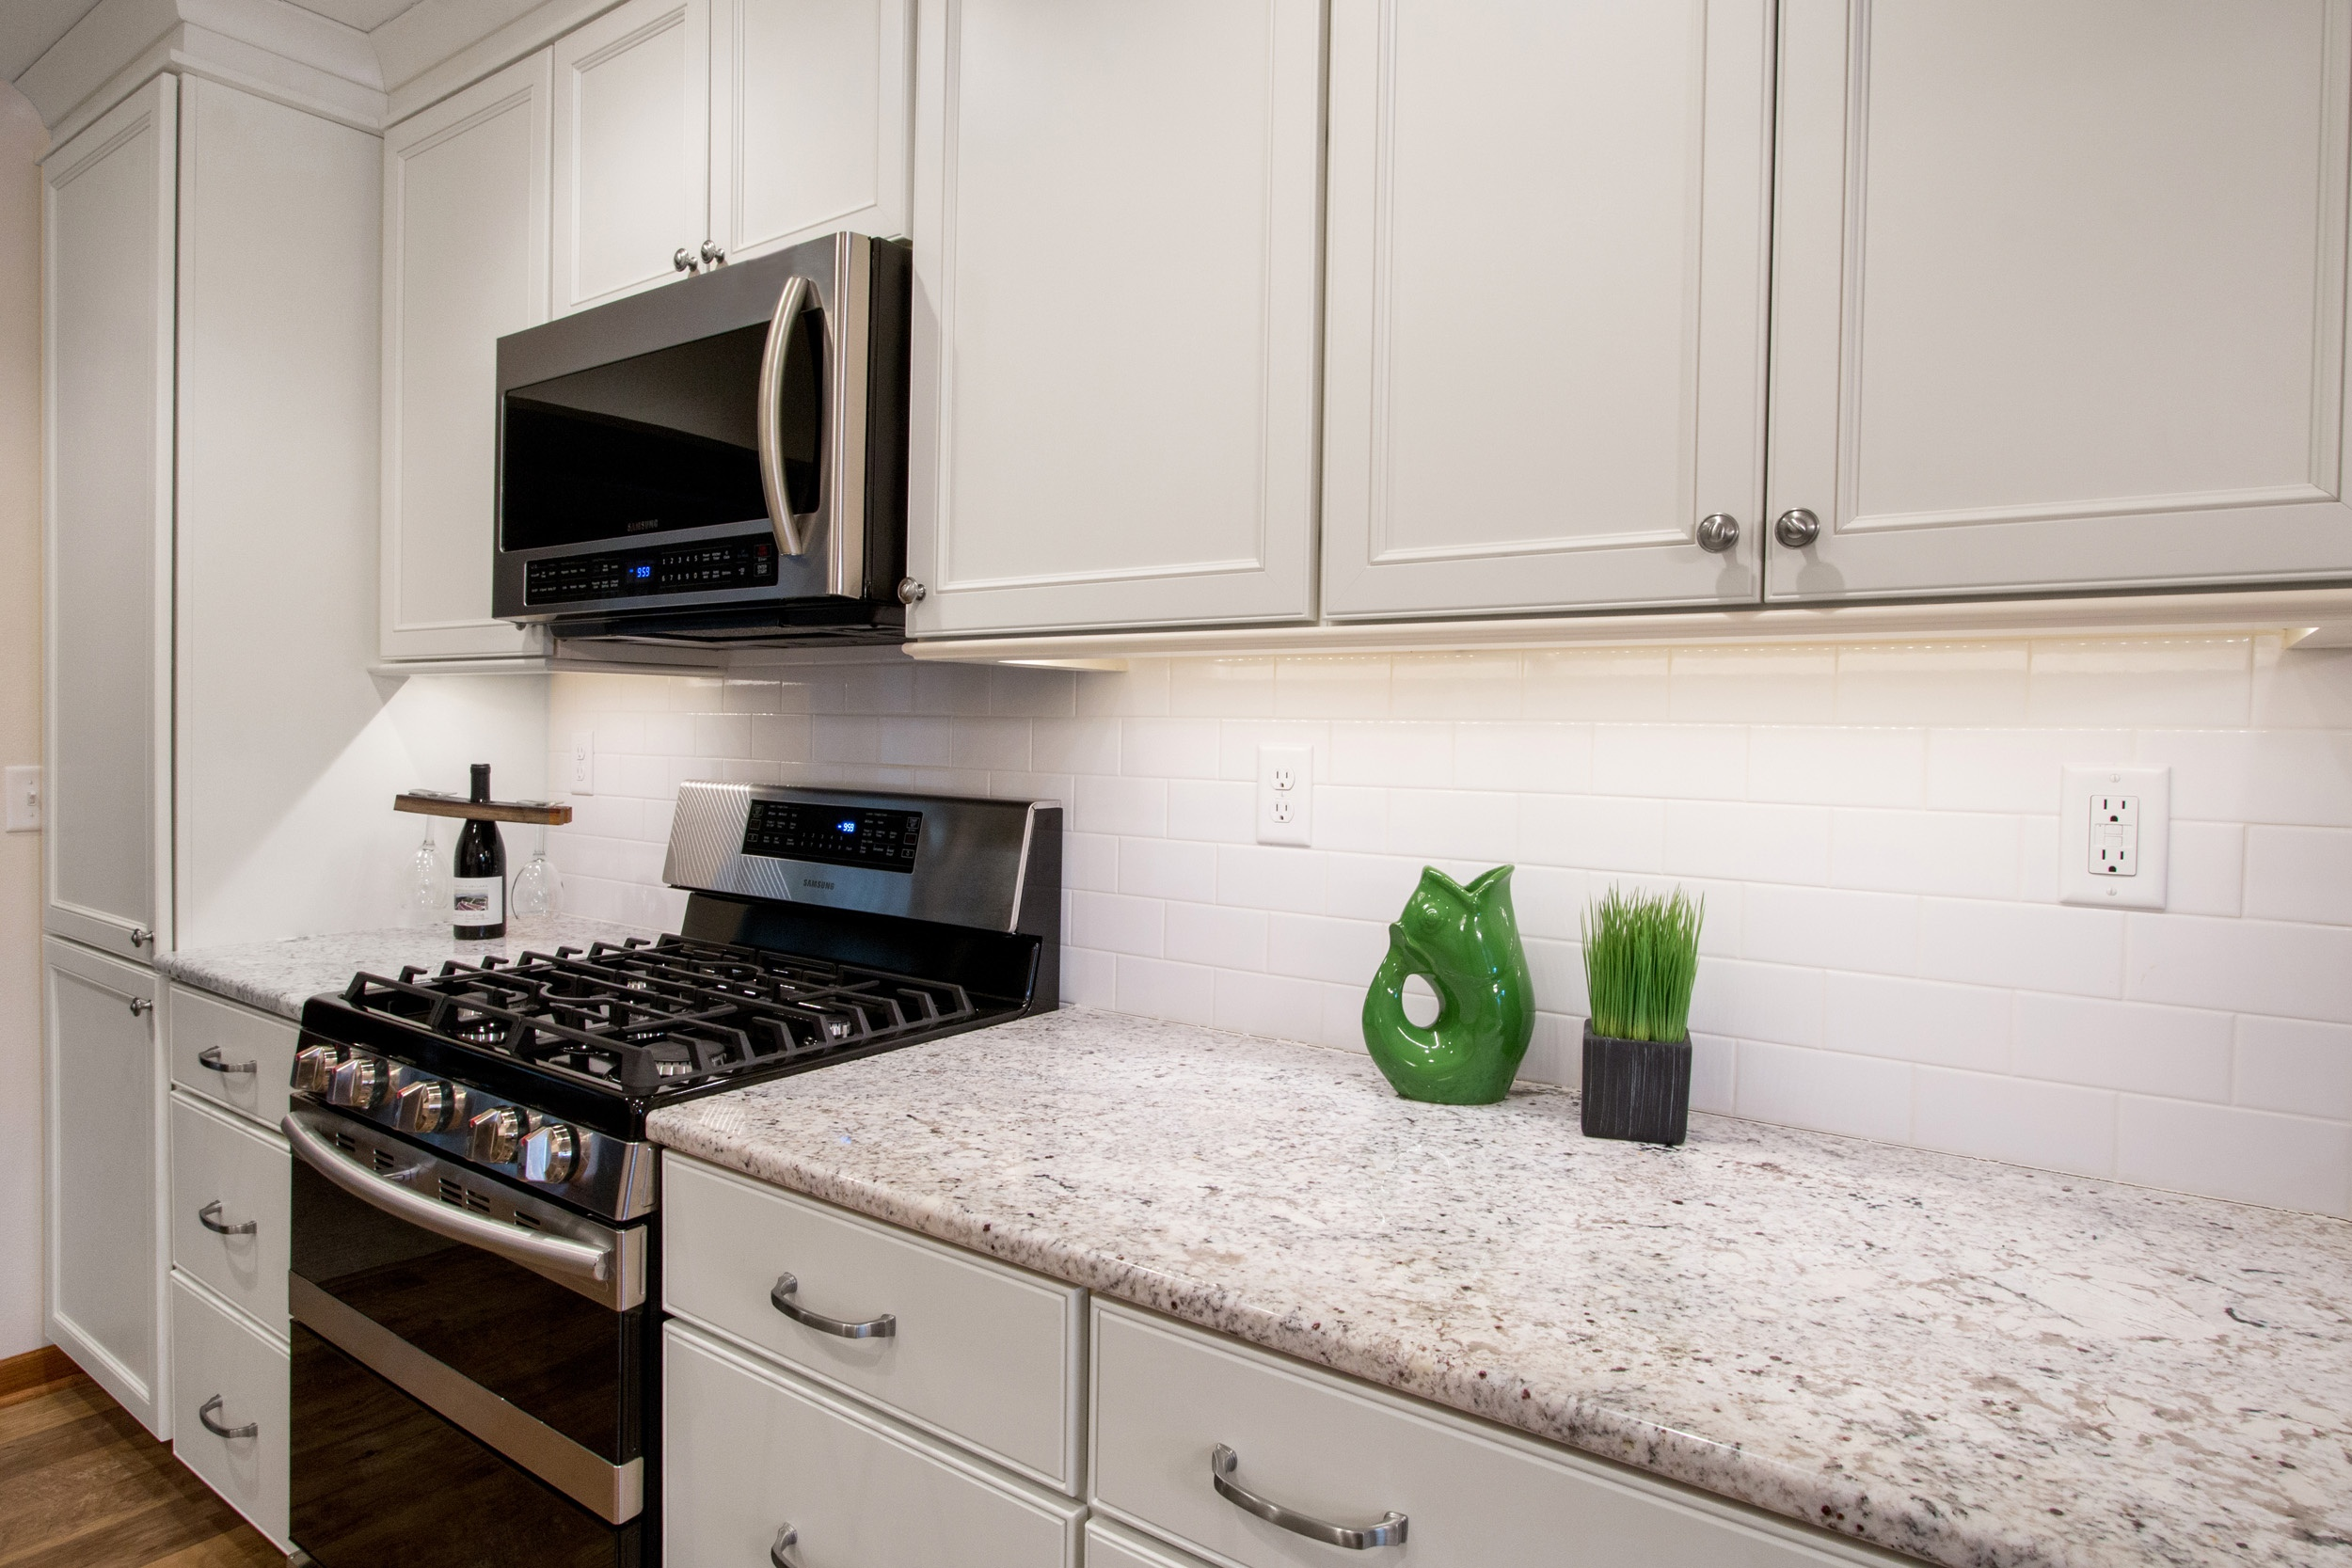 how much for kitchen remodel kitchens painted orange remodels where does your money go